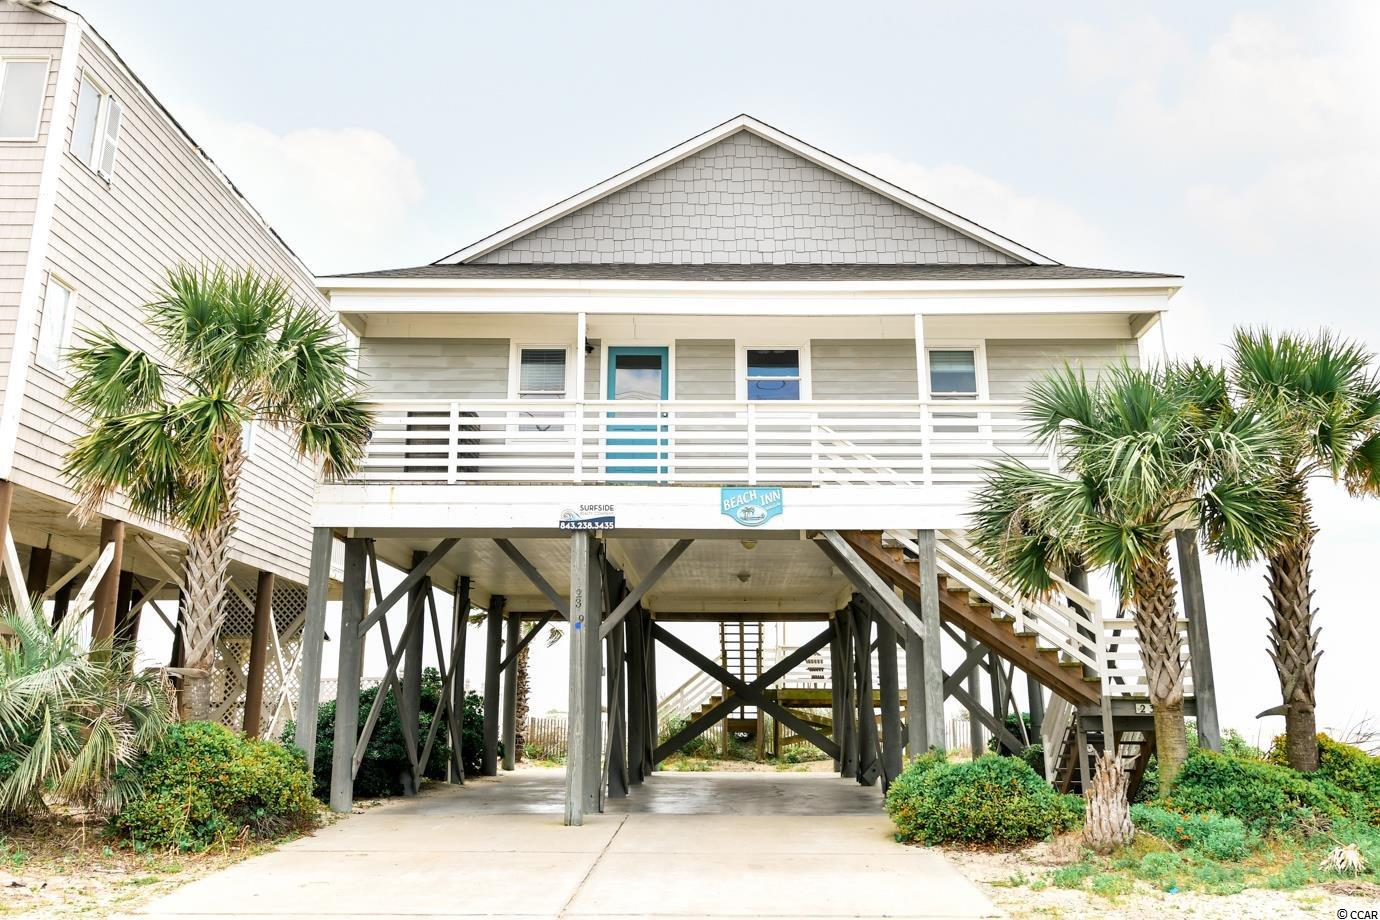 This is a unique 4 bedroom, 4 bathroom, oceanfront house within walking distance from the pier in Garden City. Don't miss this excellent opportunity to own this great rental property or make it a second home.